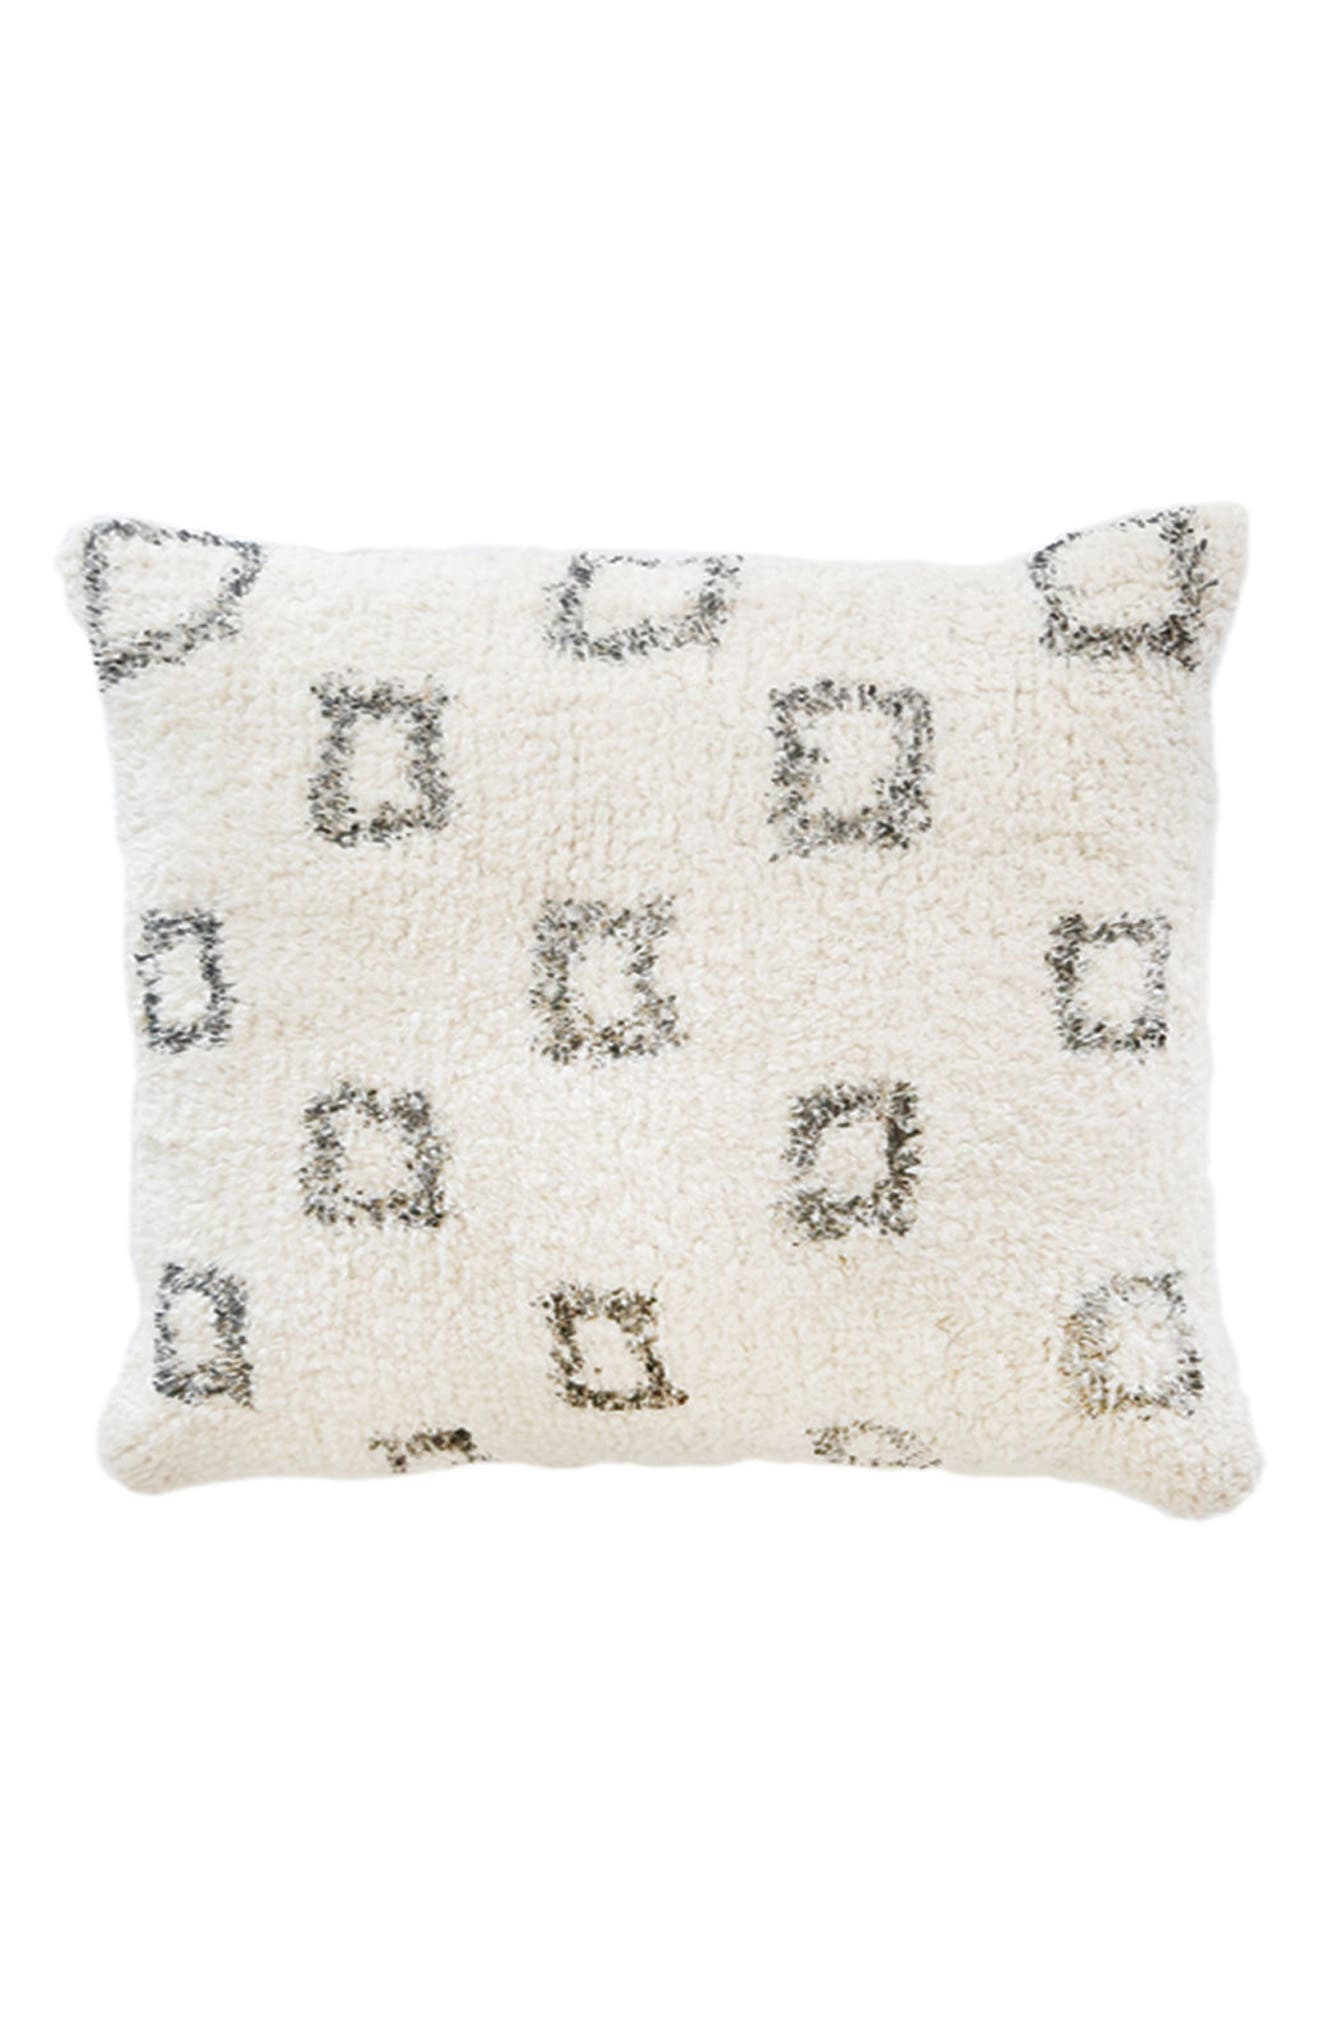 Bowie Big Accent Pillow,                             Main thumbnail 1, color,                             Ivory